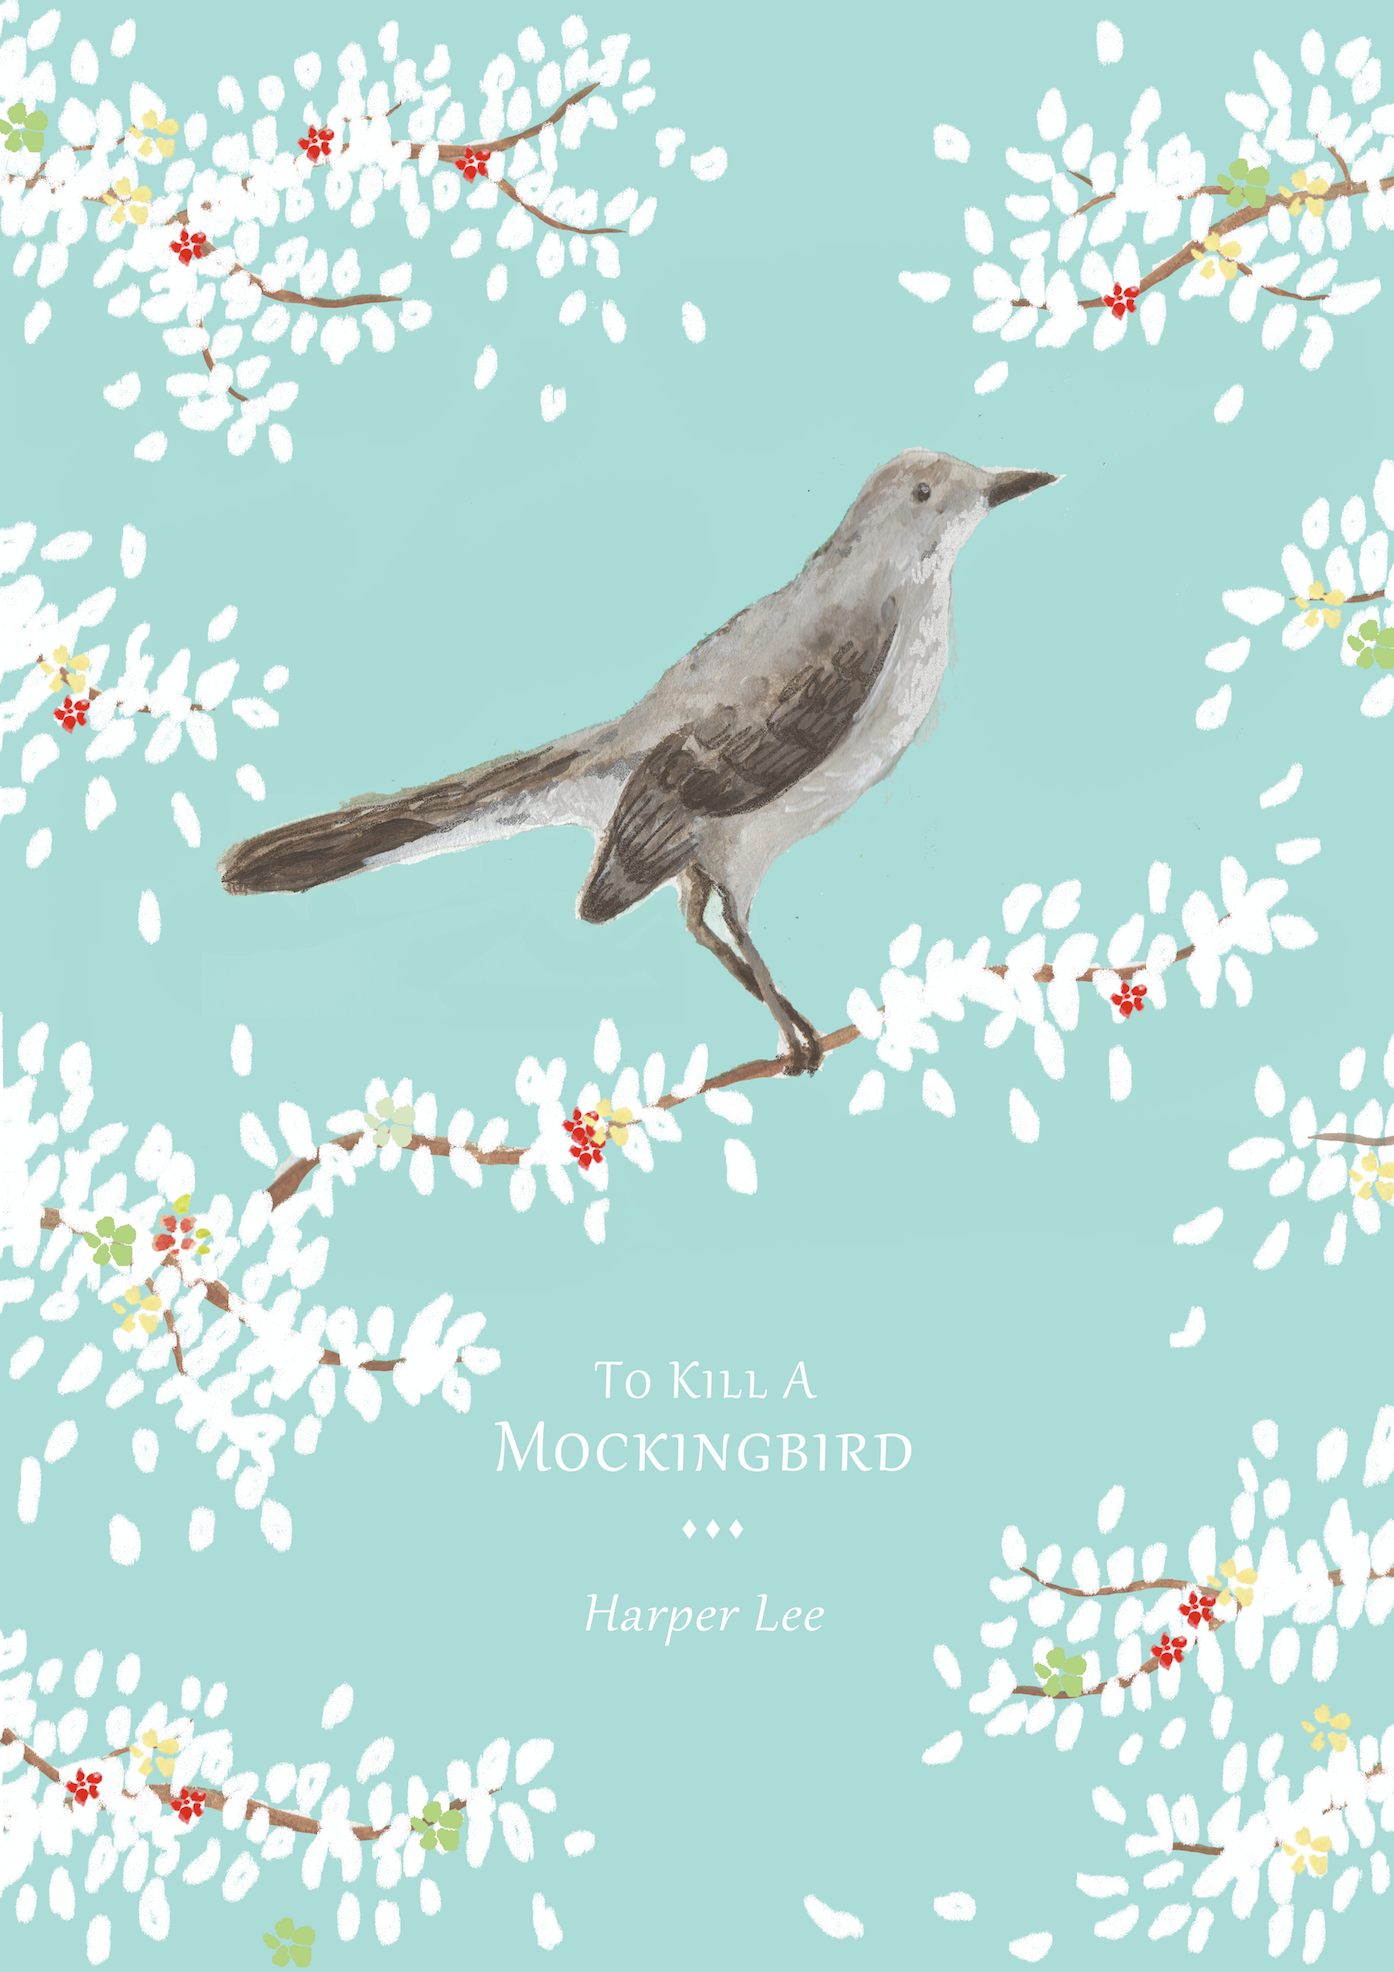 to kill a mockingbird print - This print is a mix of watercolour and digital, the mockingbird within was hand drawn and painted with watercolour & the background and leaves are all digitally drawn.Fun fact: This print was commissioned to feature in a TV set.